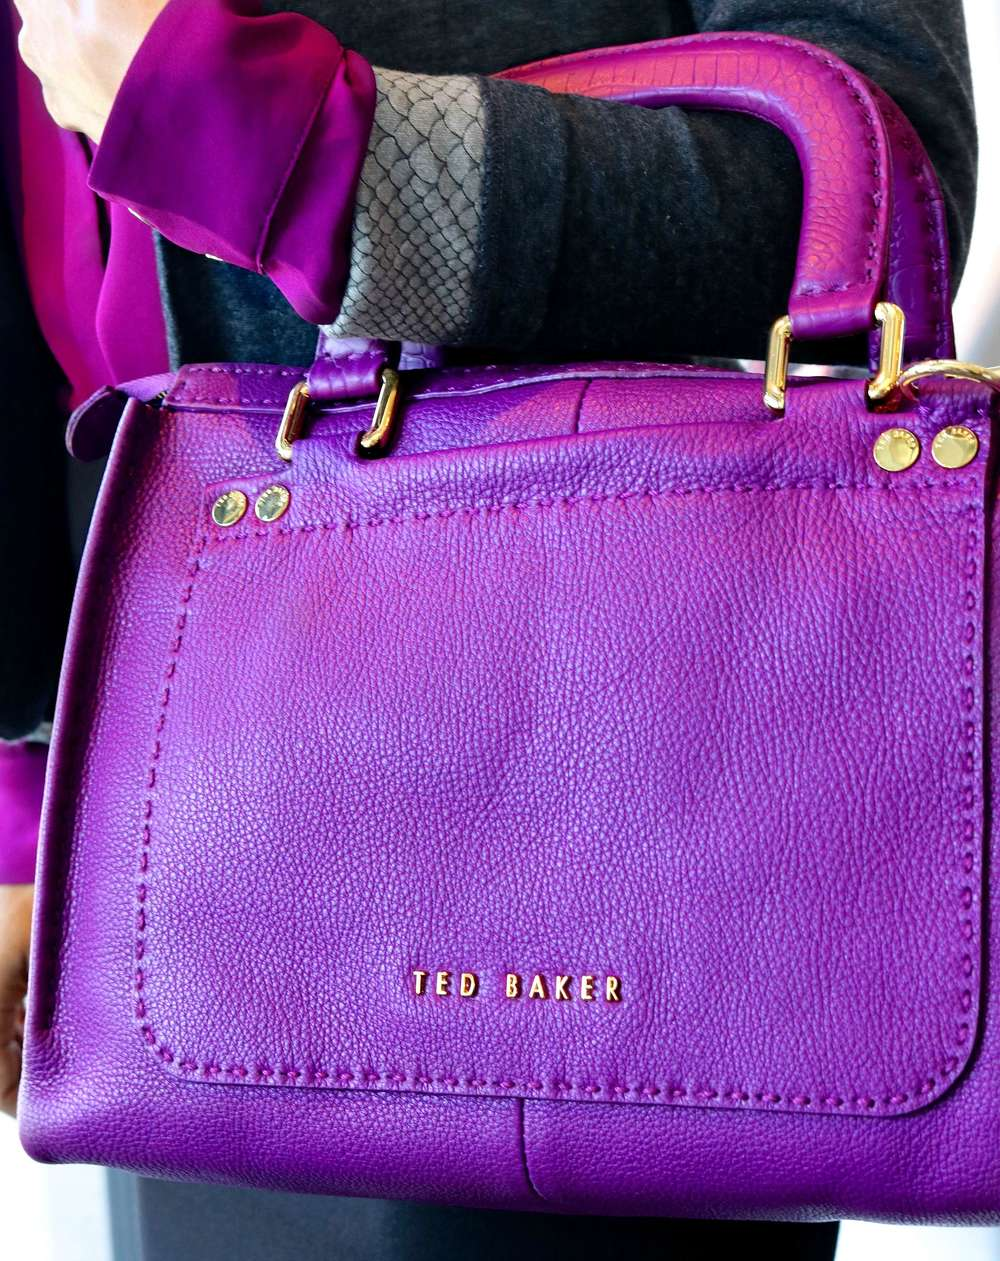 Ted Baker Gaitory Stab Stitch Leather Tote Bag in Grape